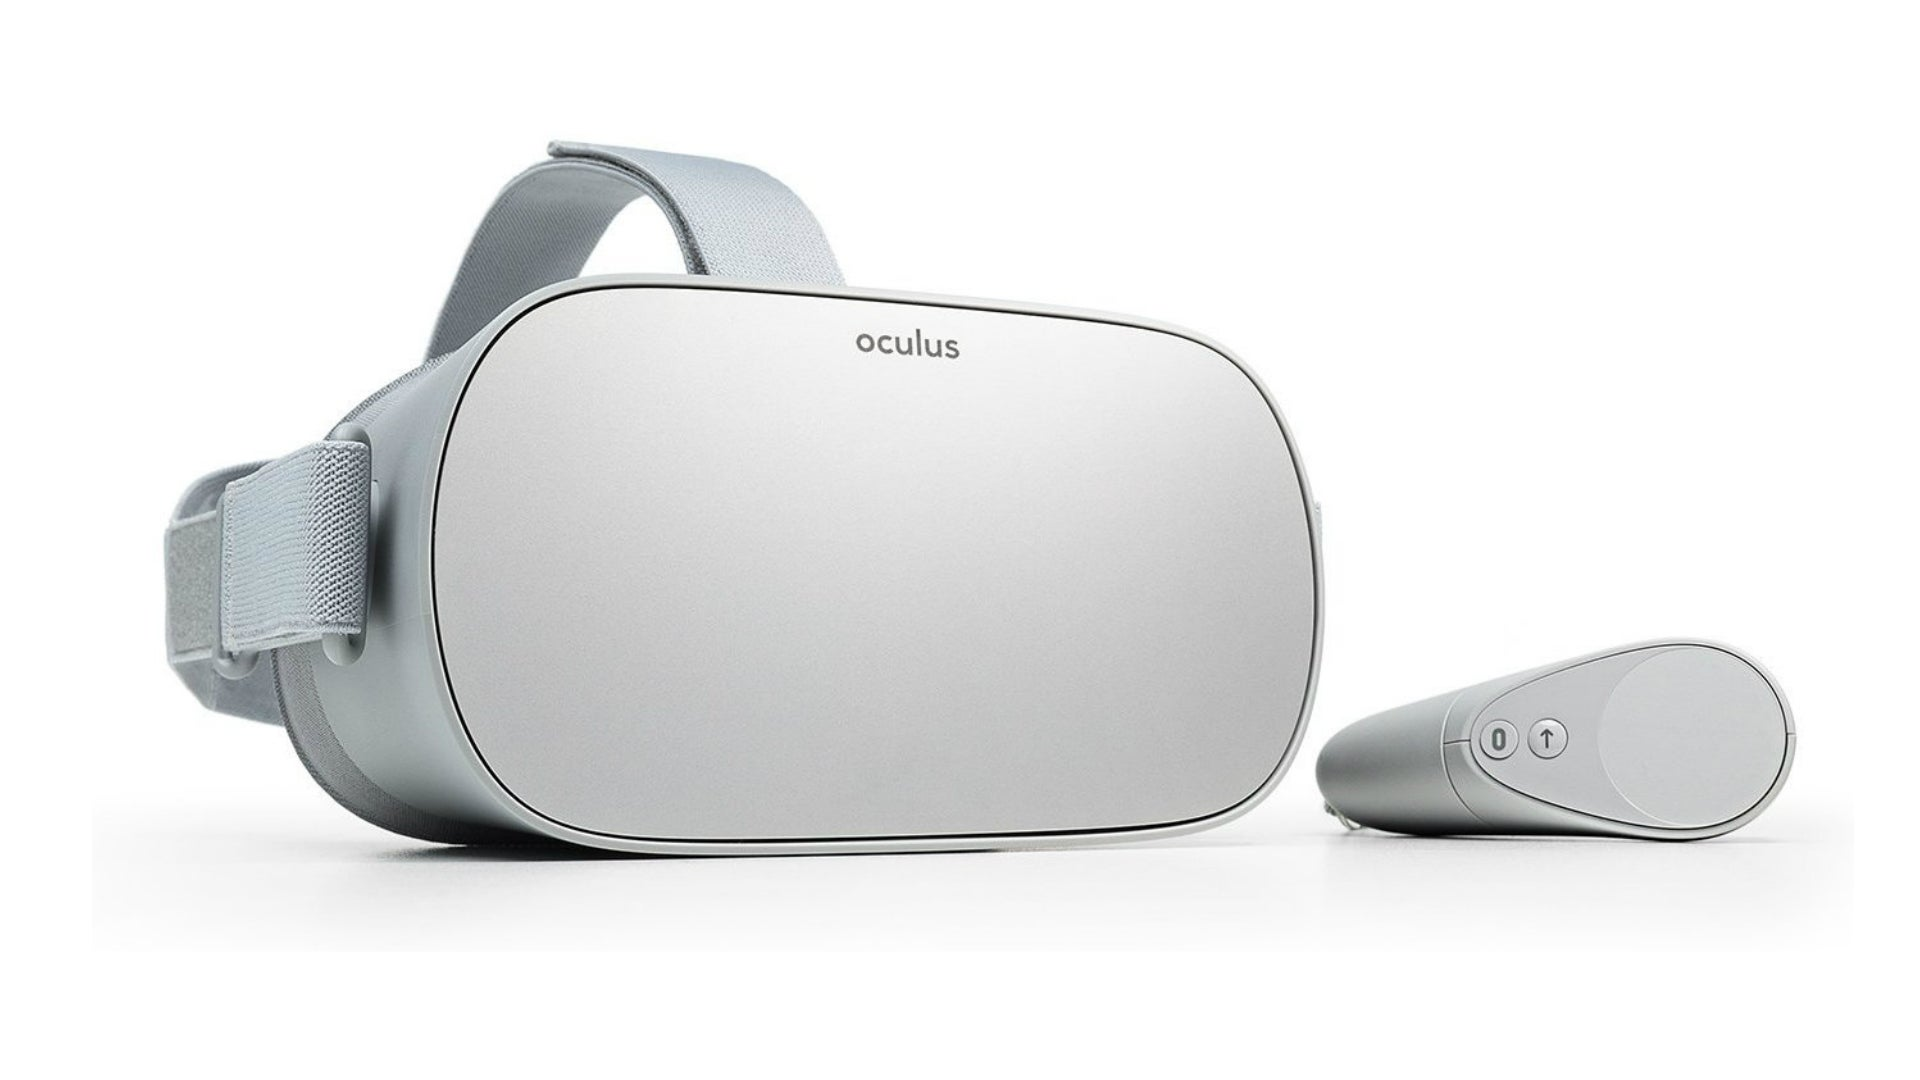 Take your first steps into virtual reality with this Oculus Go Prime Day deal